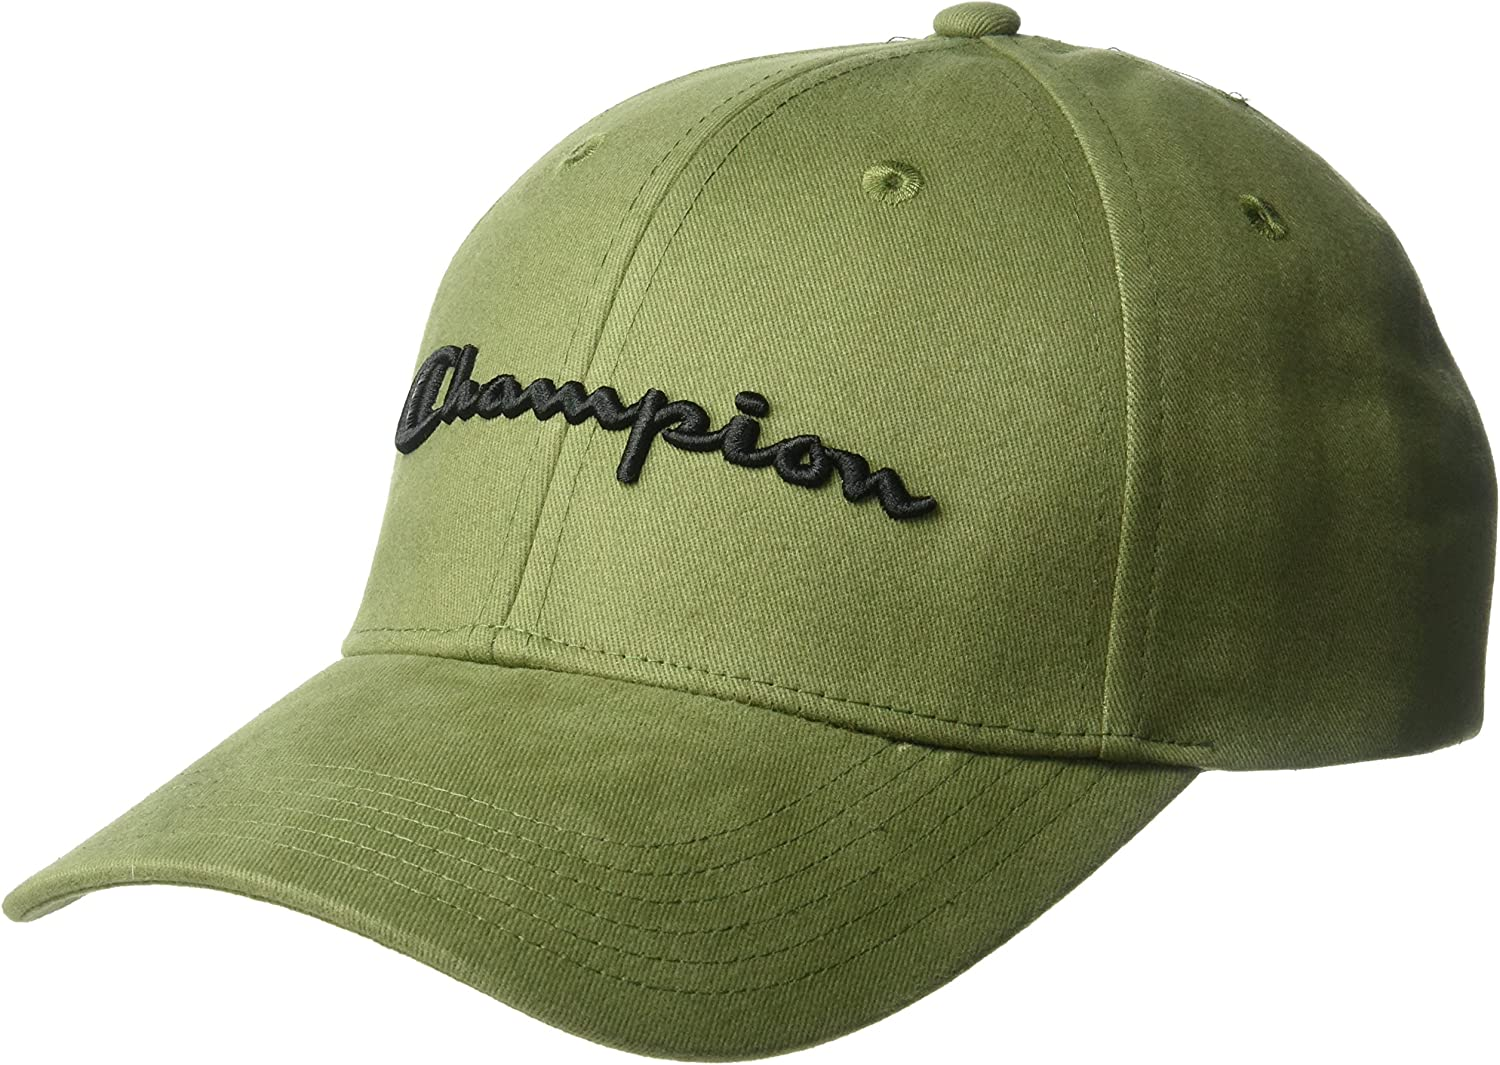 Champion Life Boys Classic Twill Hat Baseball Cap